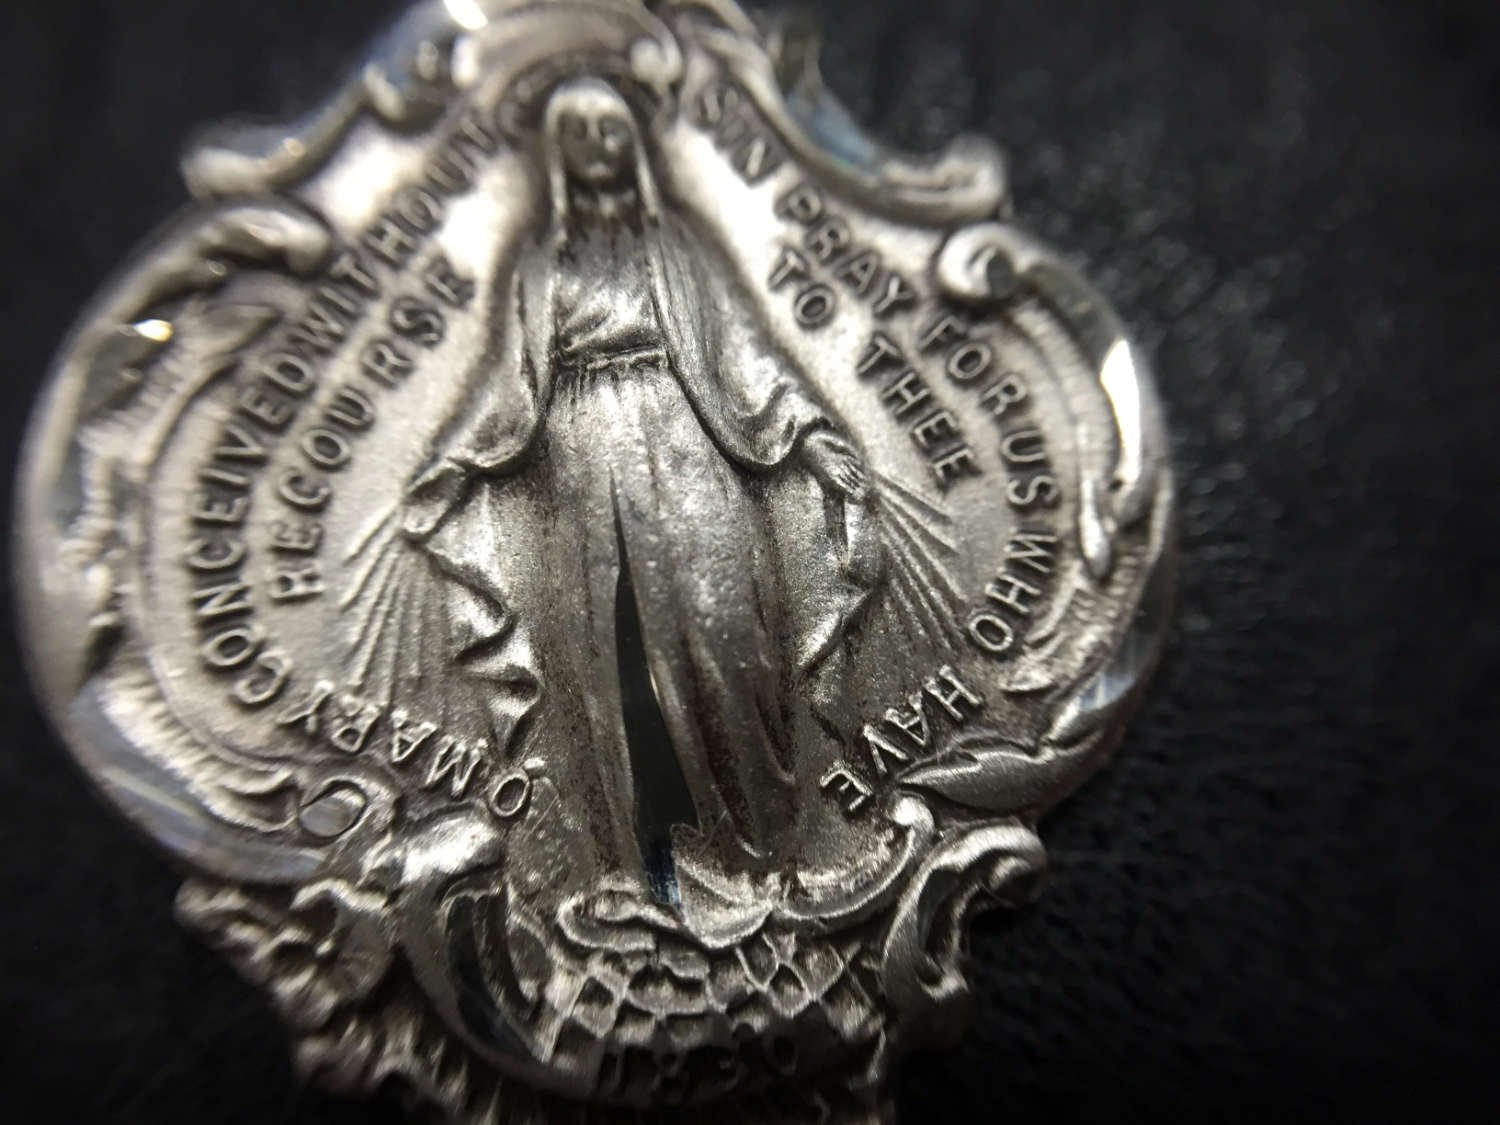 Hail Mary Prayer Sterling Silver Pendant + 24 Inch Sterling Silver Chain with Clasp by Heartland Store (Image #6)